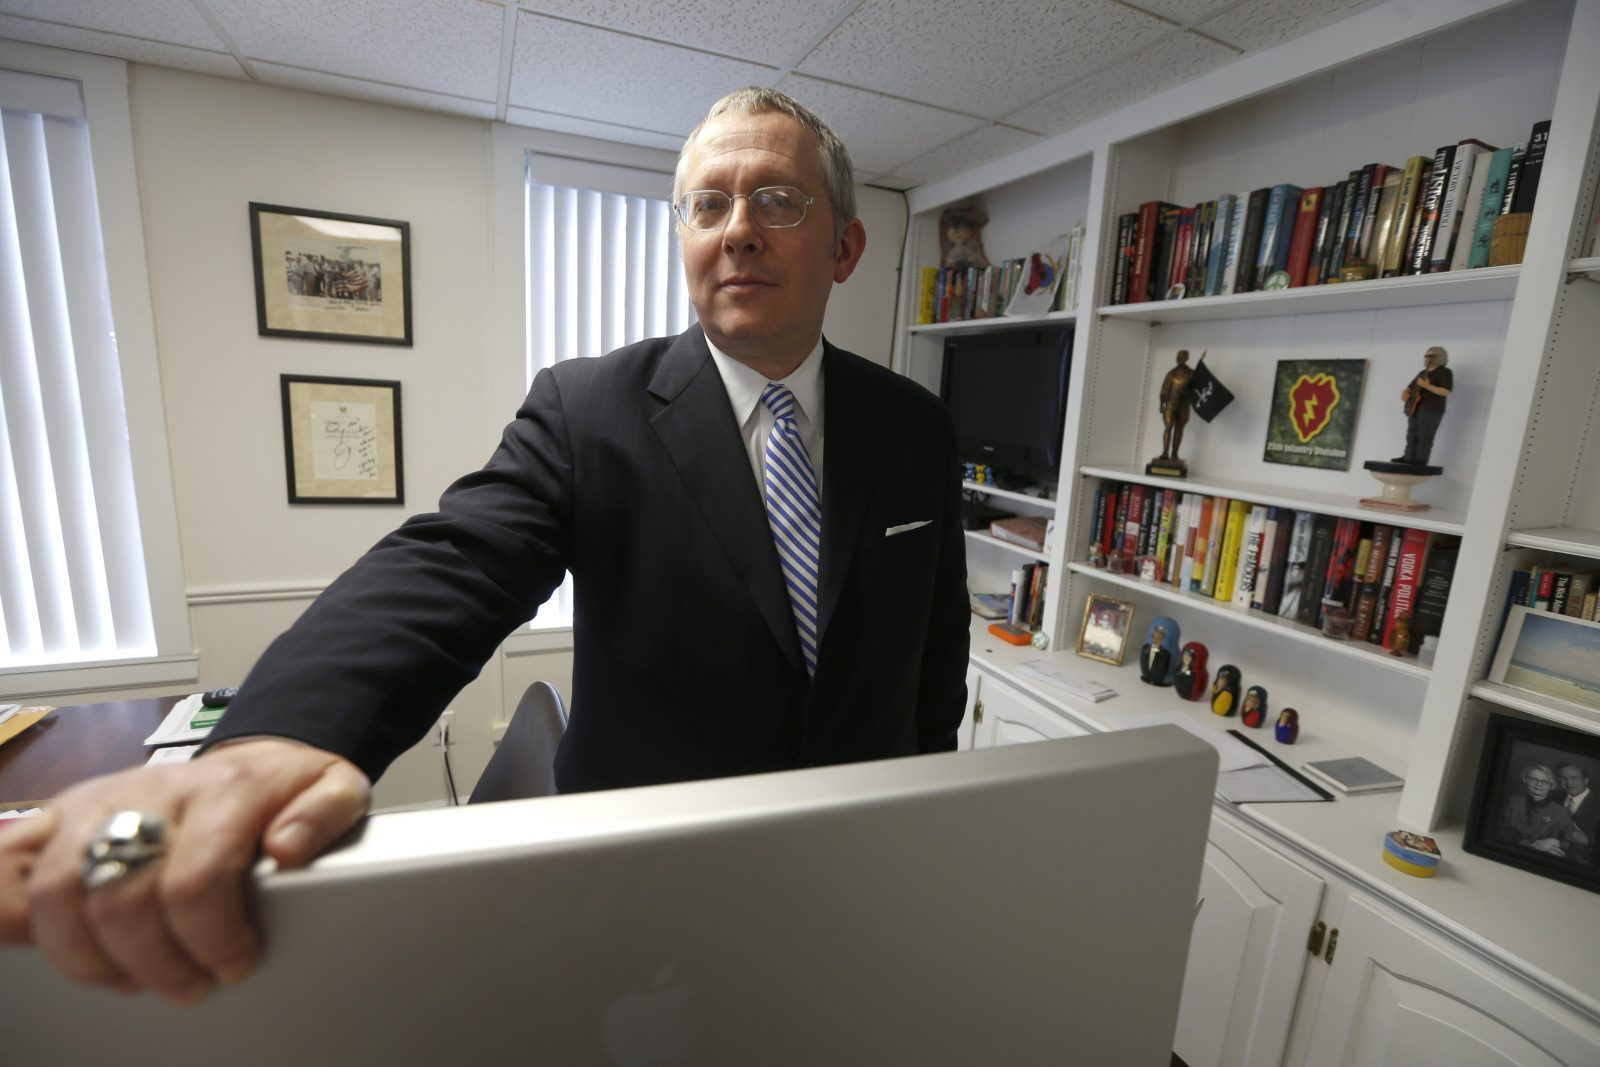 Republican political consultant Michael Caputo in his East Aurora office. (Robert Kirkham/News file photo)